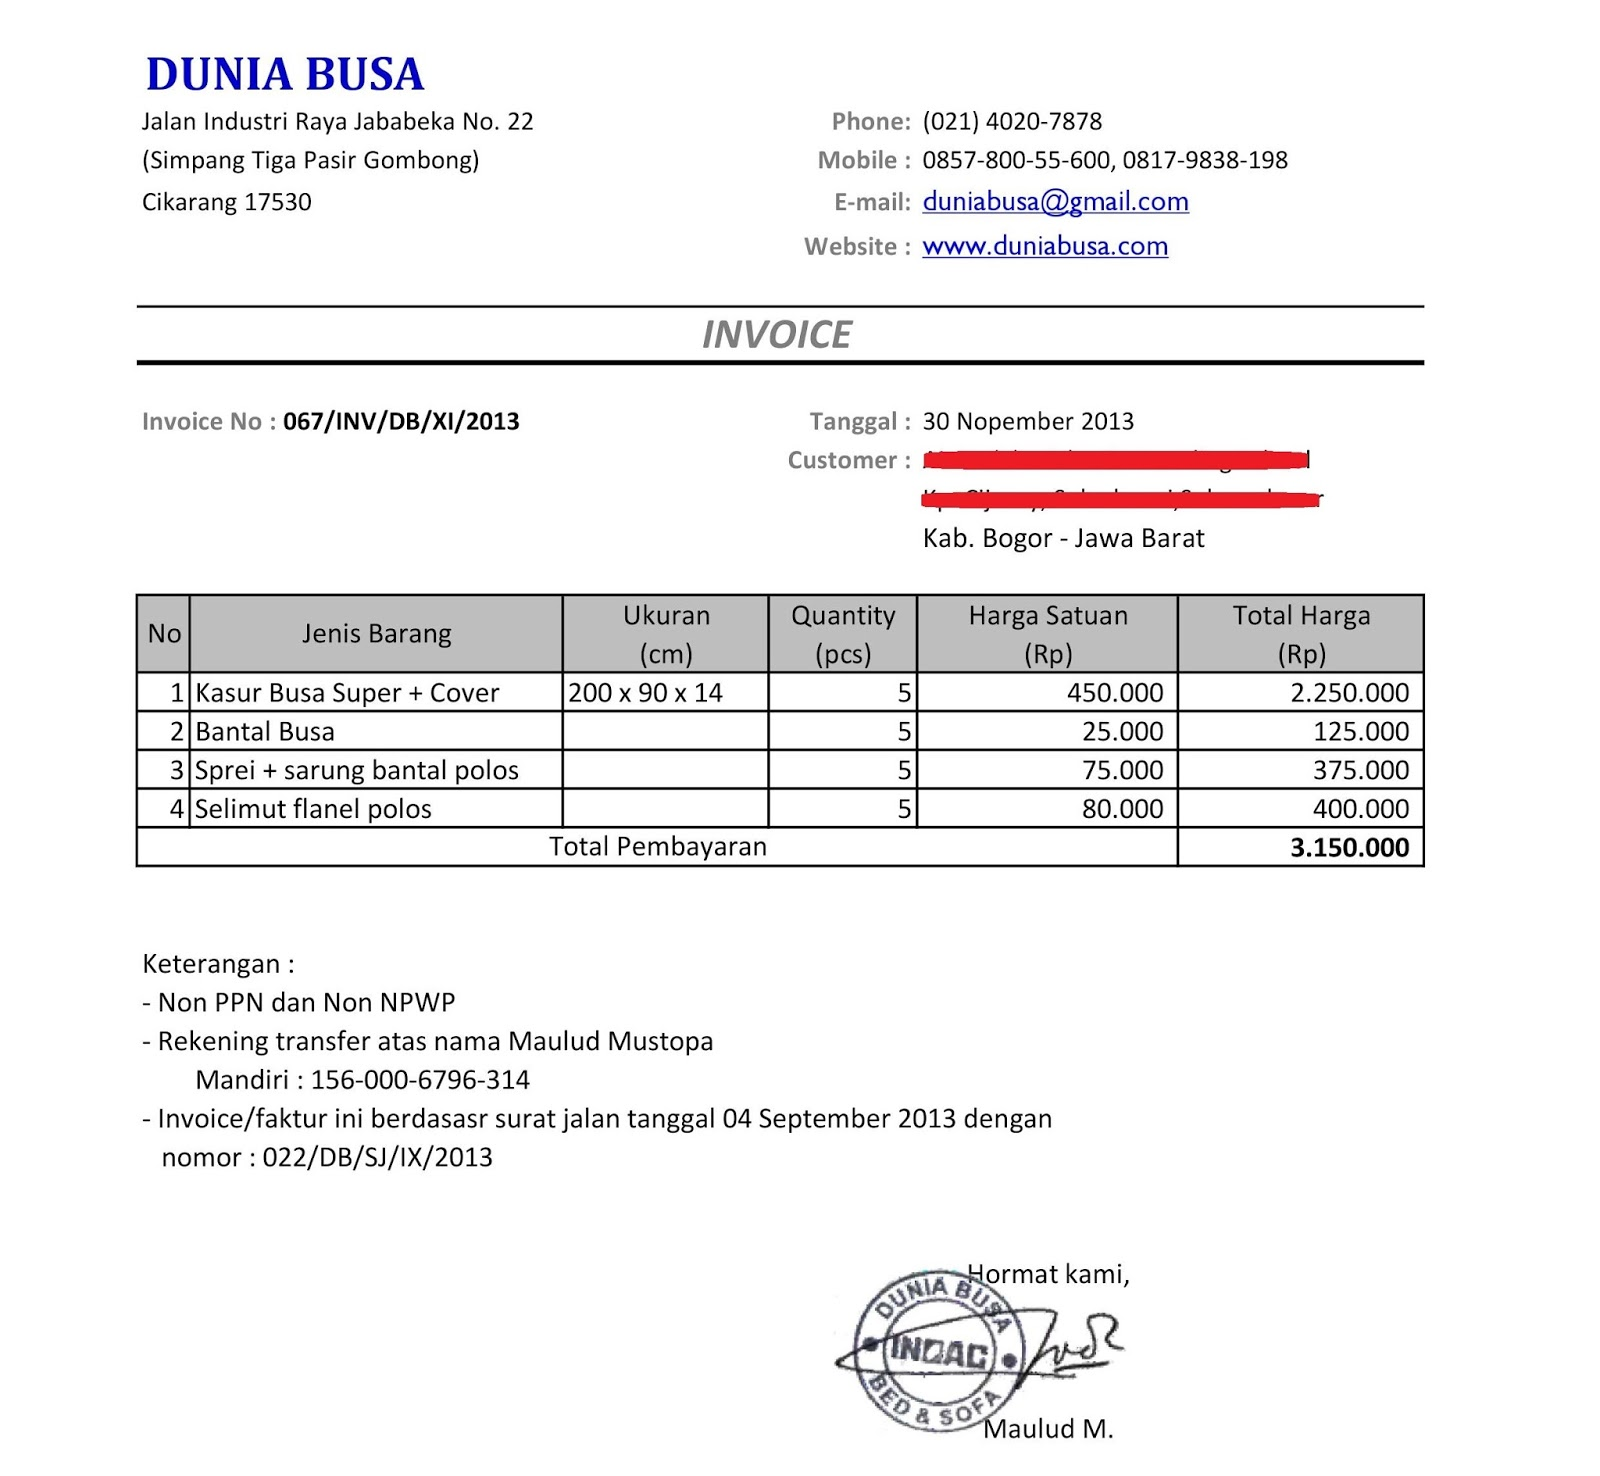 Usdgus  Seductive Free Invoice Online  Create Invoice Online  Invoice Template  With Licious Contoh Format Invoice Atau Surat Tagihan  Brankas Arsip  Free Invoice Online With Alluring Proforma Invoice Template Word Also Bill Invoice Template In Addition Sample Invoices Word And Invoice Price Bond As Well As Microsoft Templates Invoice Additionally How To Create Invoices In Quickbooks From Sklepco With Usdgus  Licious Free Invoice Online  Create Invoice Online  Invoice Template  With Alluring Contoh Format Invoice Atau Surat Tagihan  Brankas Arsip  Free Invoice Online And Seductive Proforma Invoice Template Word Also Bill Invoice Template In Addition Sample Invoices Word From Sklepco